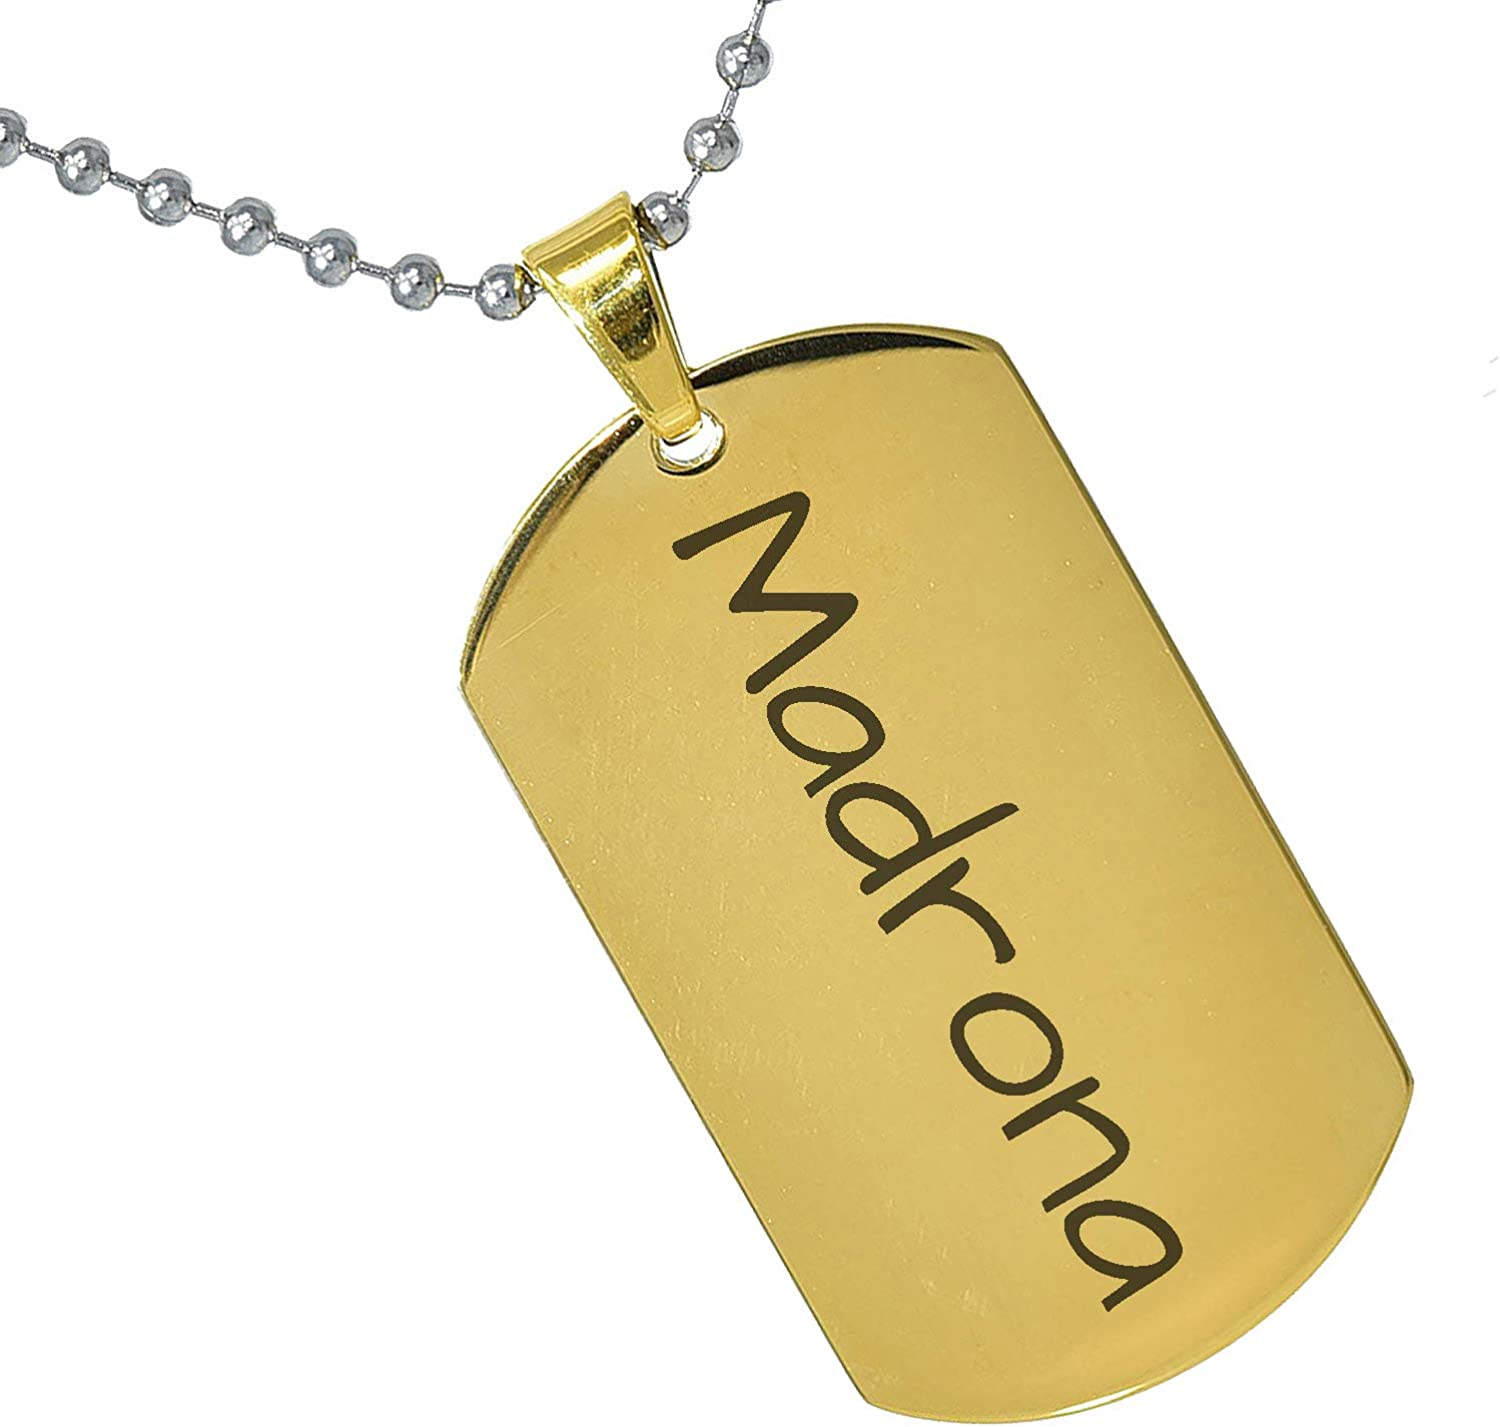 Stainless Steel Silver Gold Black Rose Gold Color Baby Name Madrona Engraved Personalized Gifts For Son Daughter Boyfriend Girlfriend Initial Customizable Pendant Necklace Dog Tags 24 Ball Chain